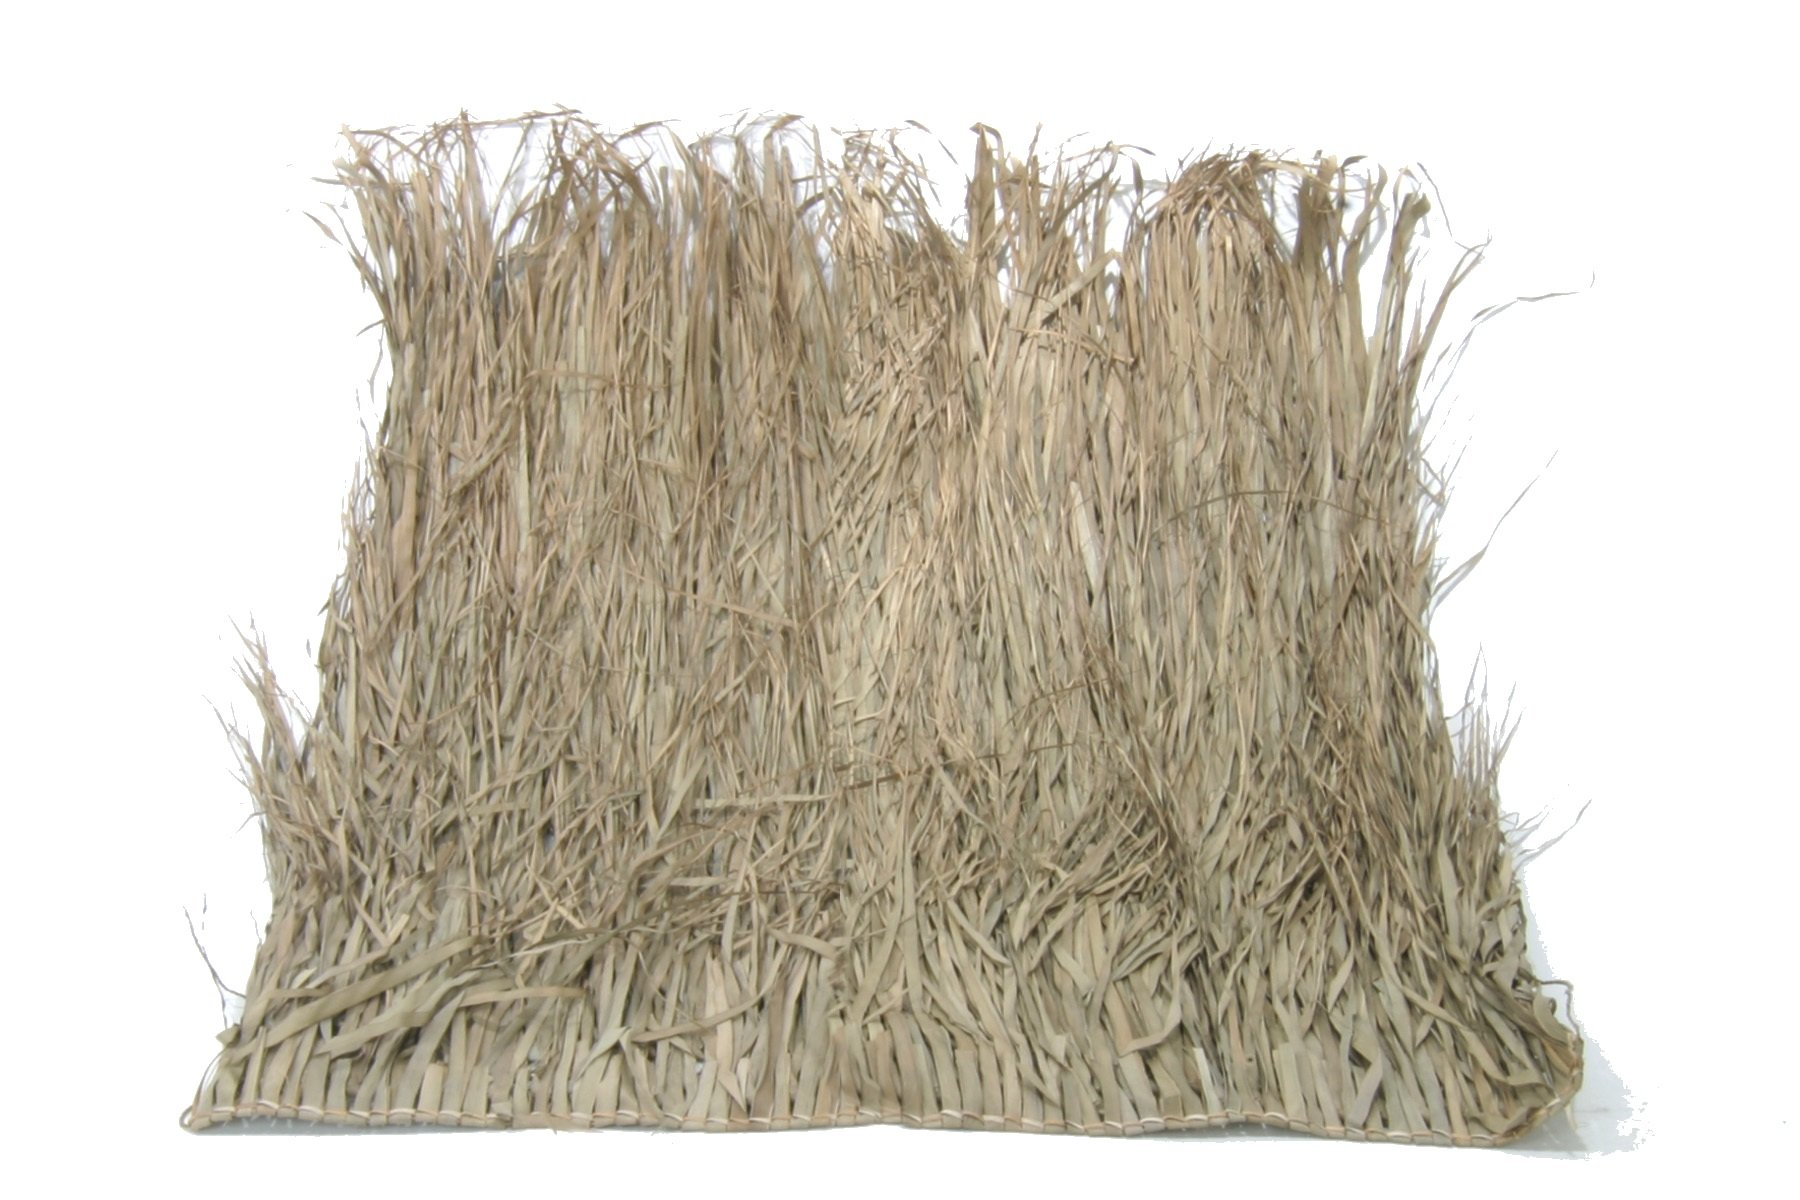 Wildfowler Grass Mat (Pack of 4), Hay, 4 x 4-Feet by Wildfowler